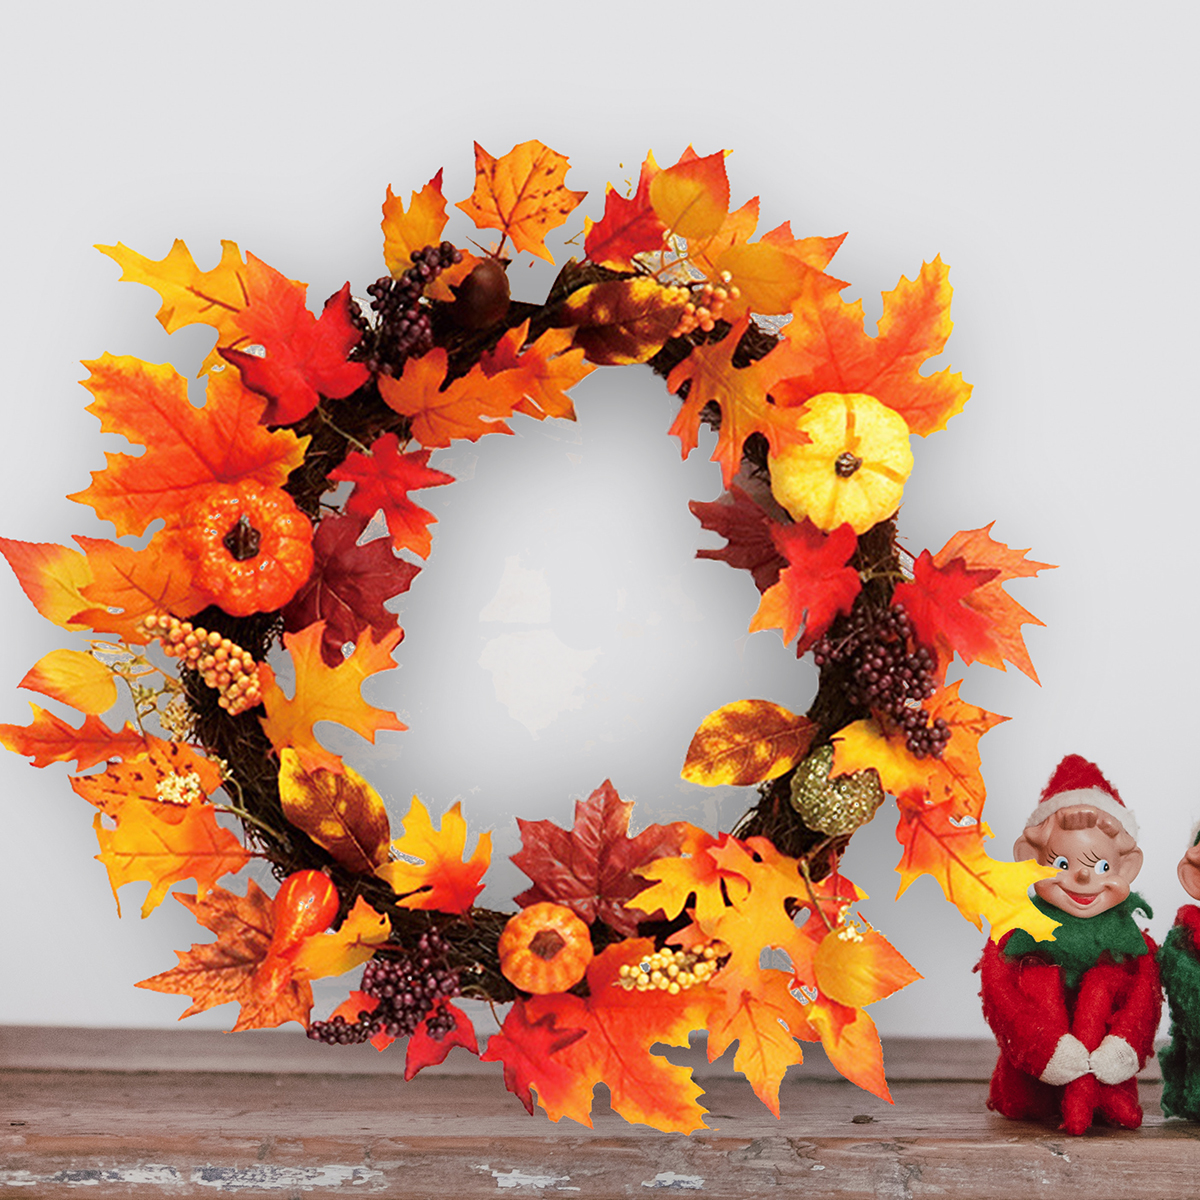 60cm Christmas Maple Leaves Grape Berry Wreath Garland Door Hanging